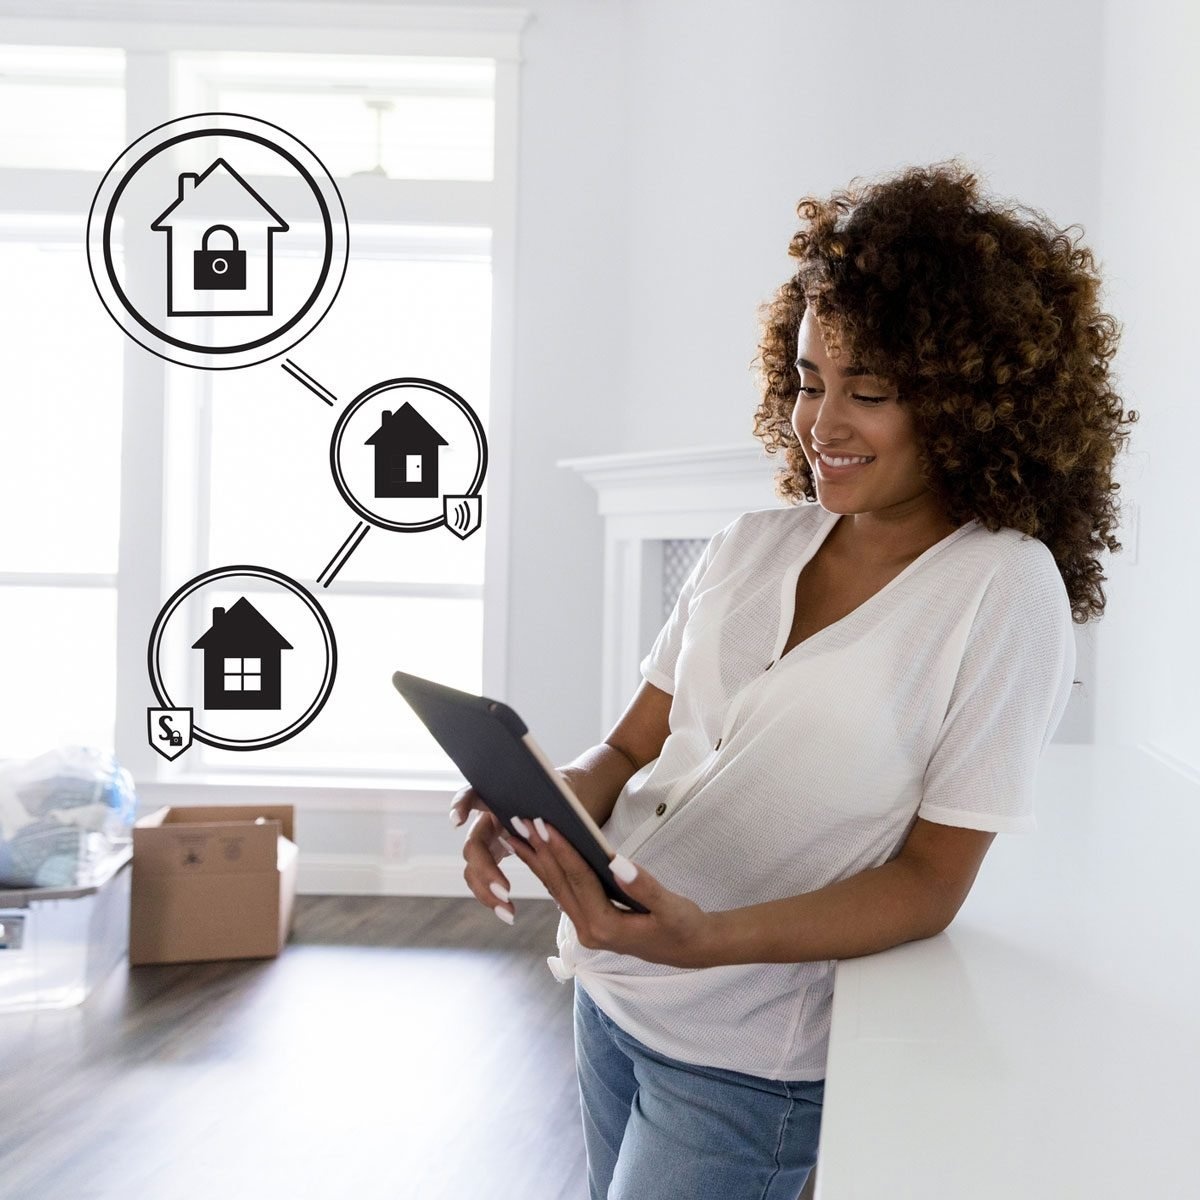 Woman using Remote Home Security System Gettyimages 1185470350